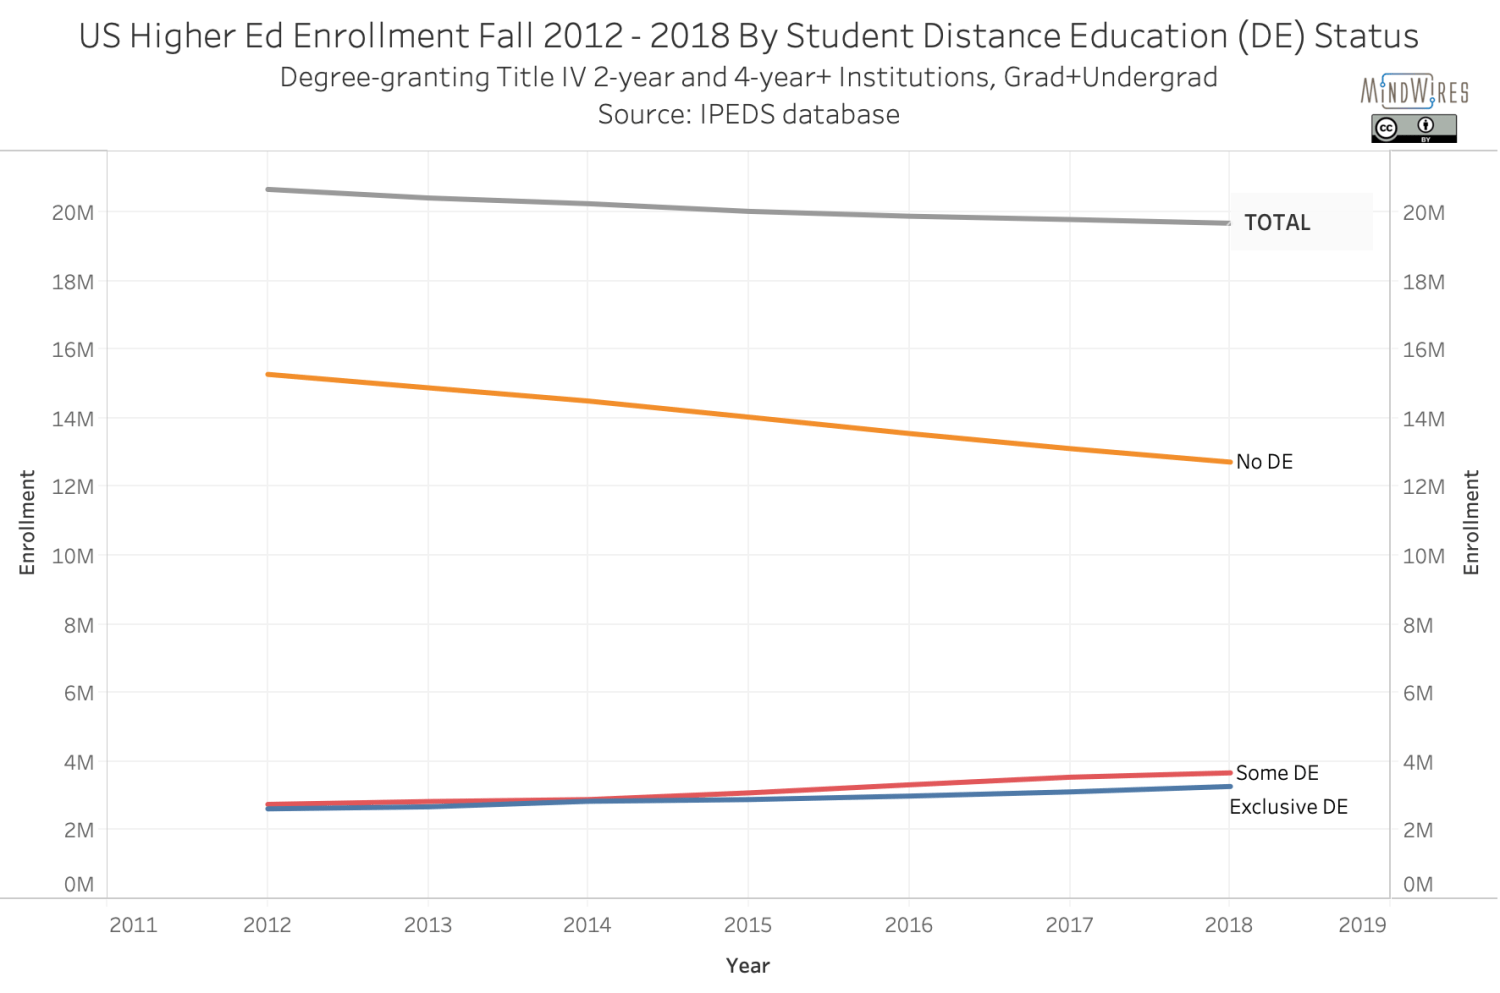 US Higher Ed Enrollment Fall 2012 - 2018 By Student Distance Education (DE) Status